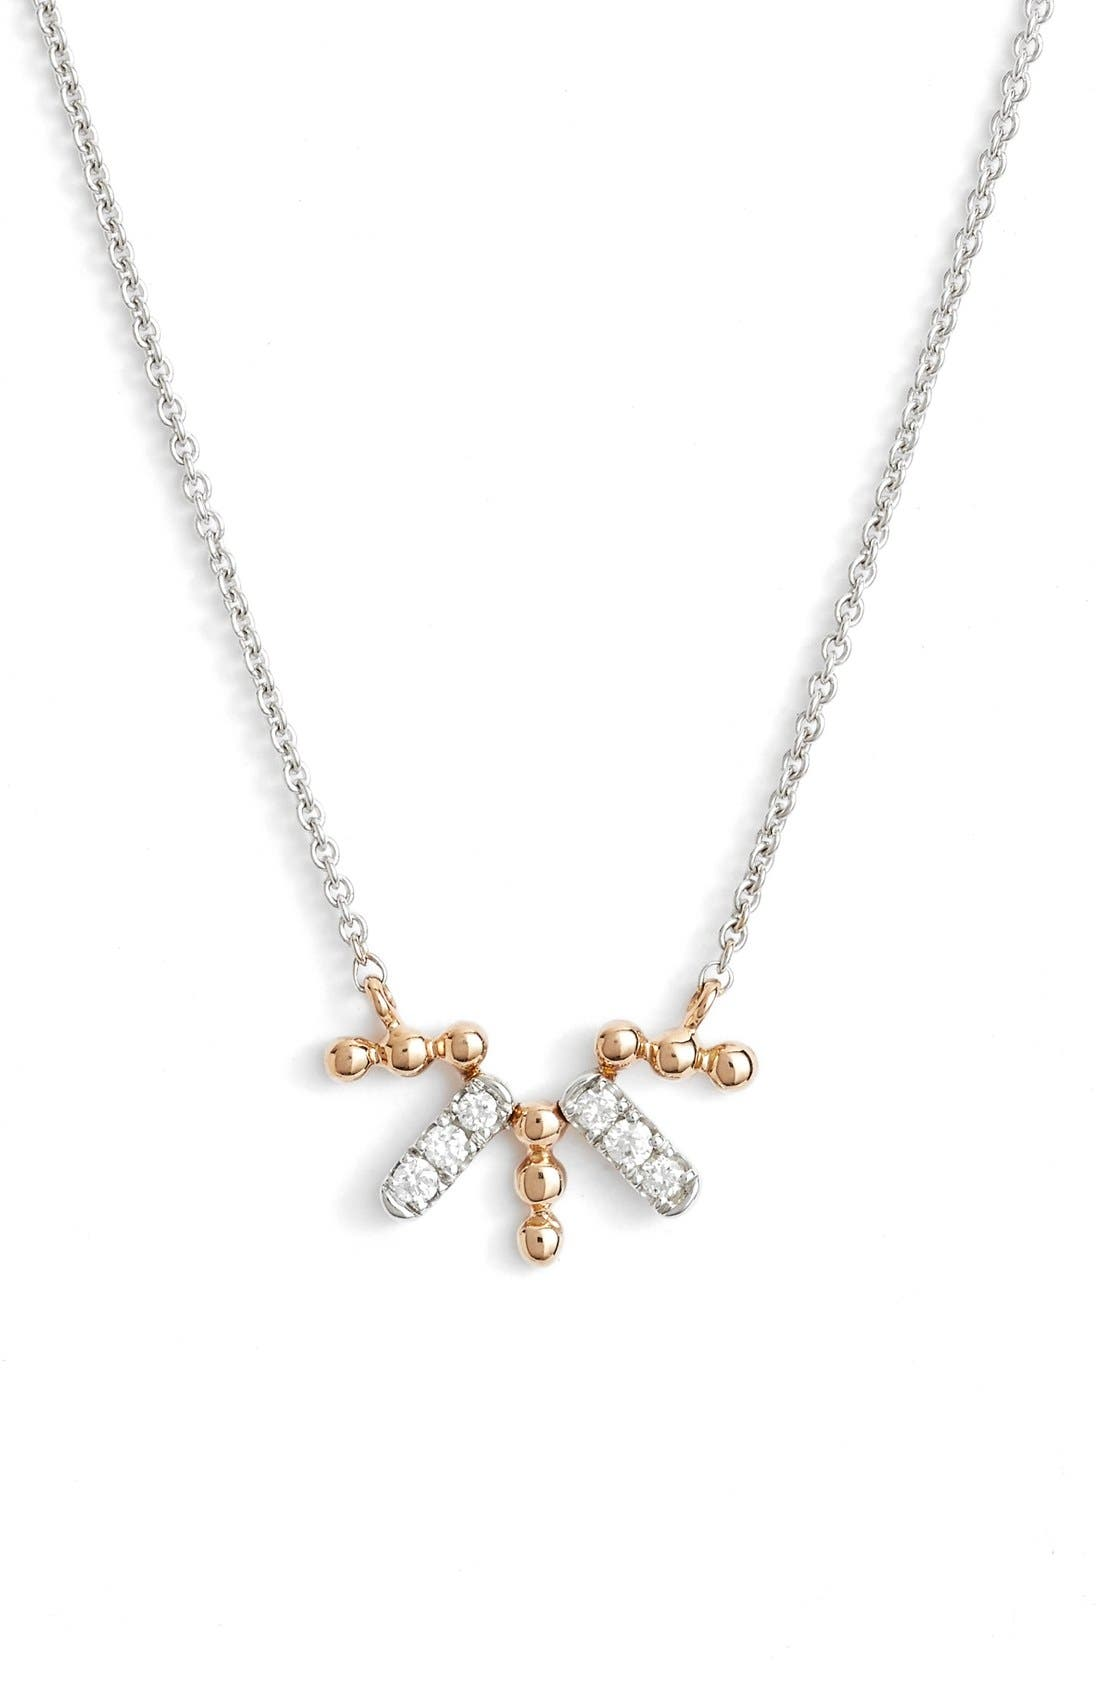 DANA REBECCA DESIGNS Poppy Rae Duo Diamond Pendant